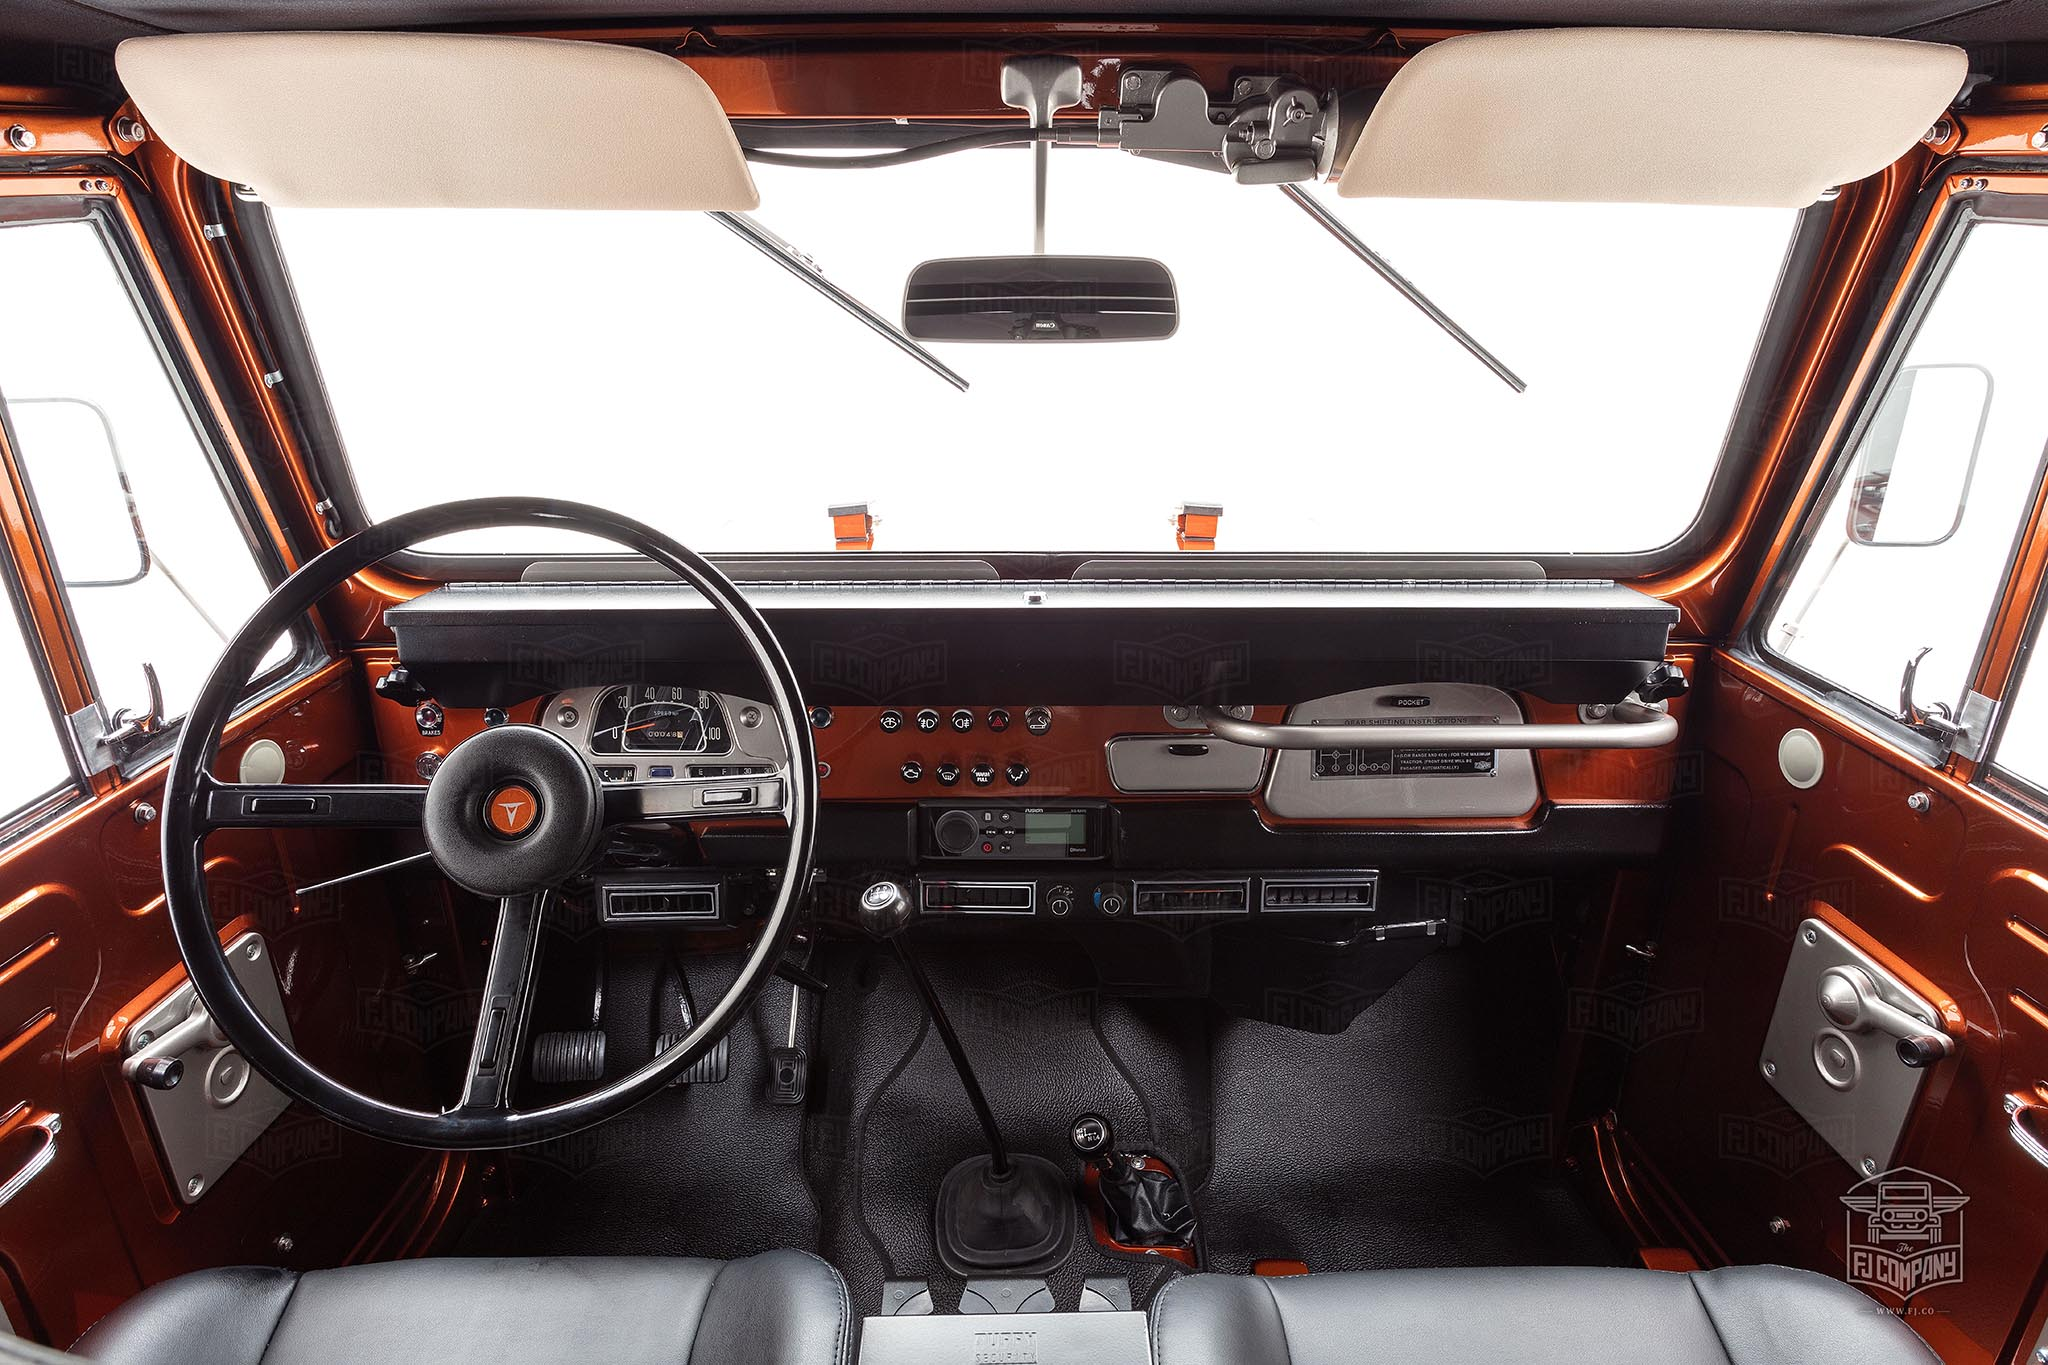 Fj Company Builds A 1972 Toyota Fj40 Land Cruiser Inspired